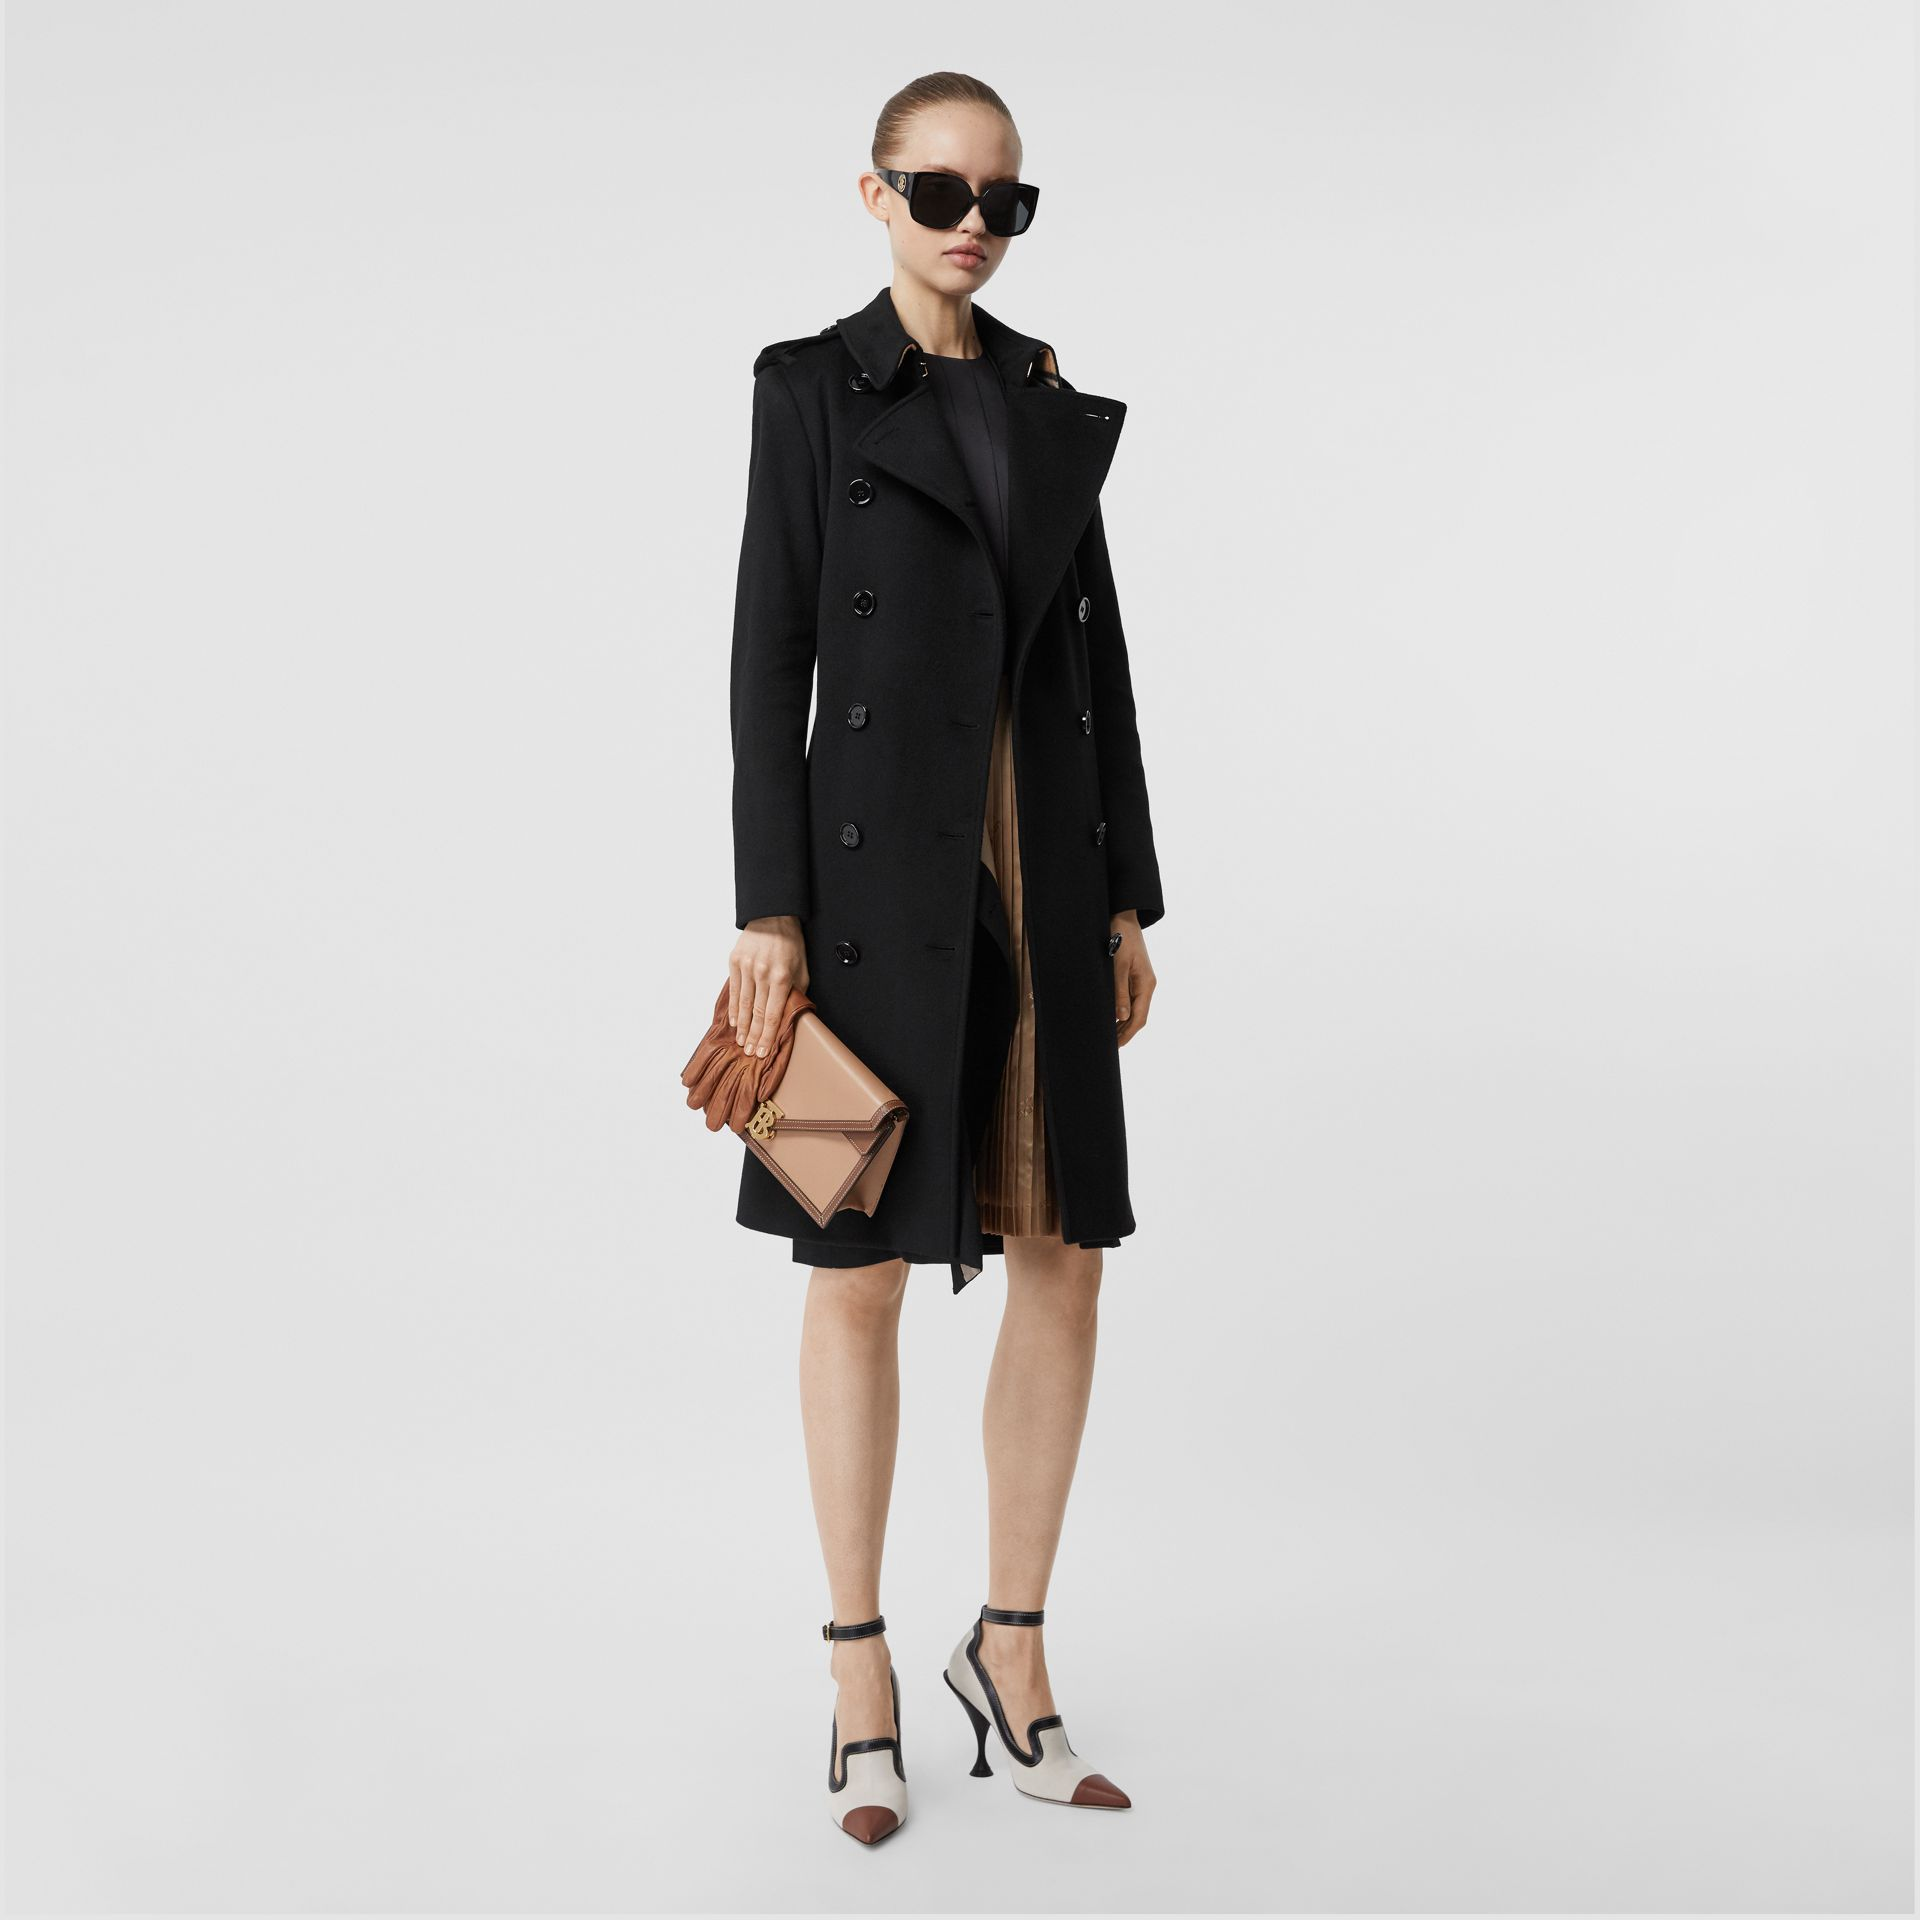 Cashmere Trench Coat in Black - Women | Burberry Singapore - gallery image 6